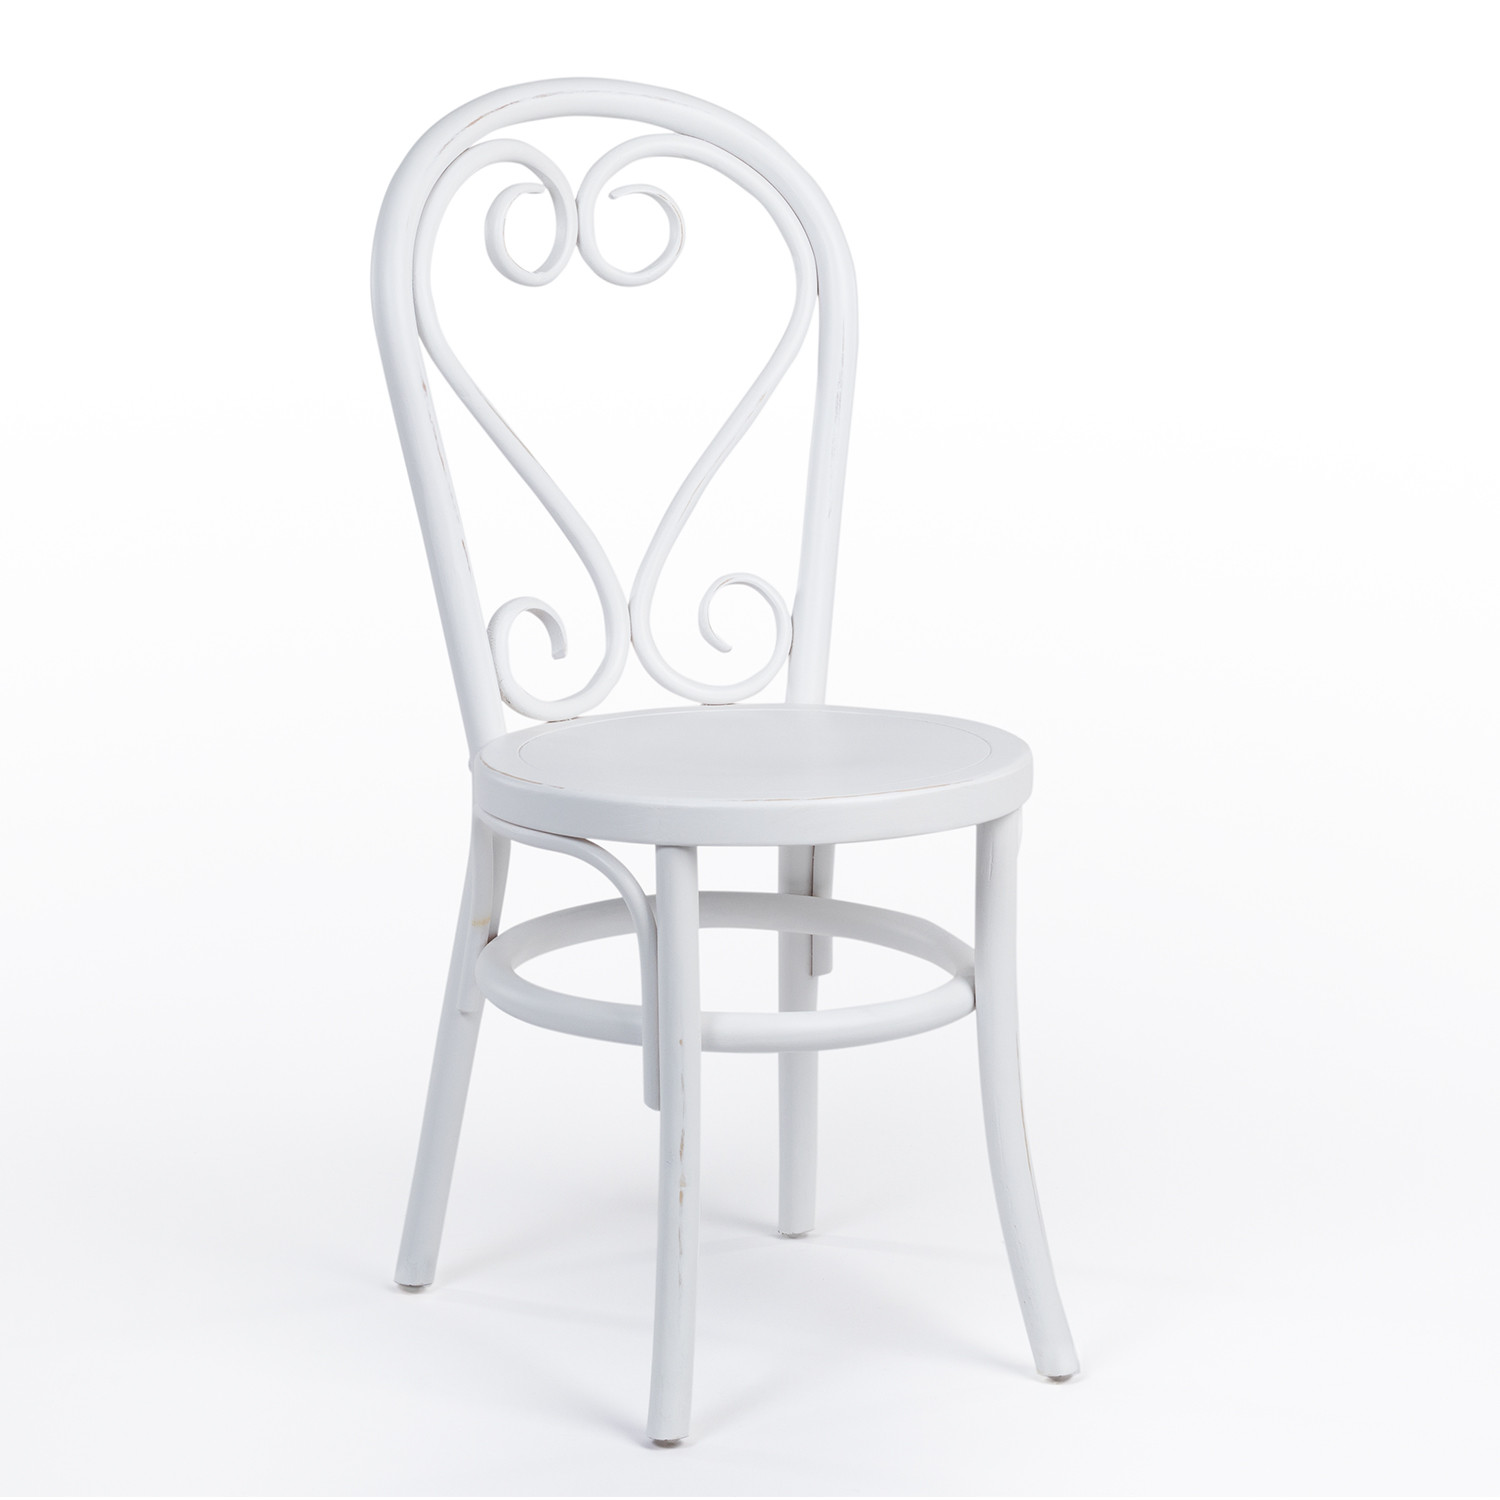 Uore Vintage Chair , gallery image 1